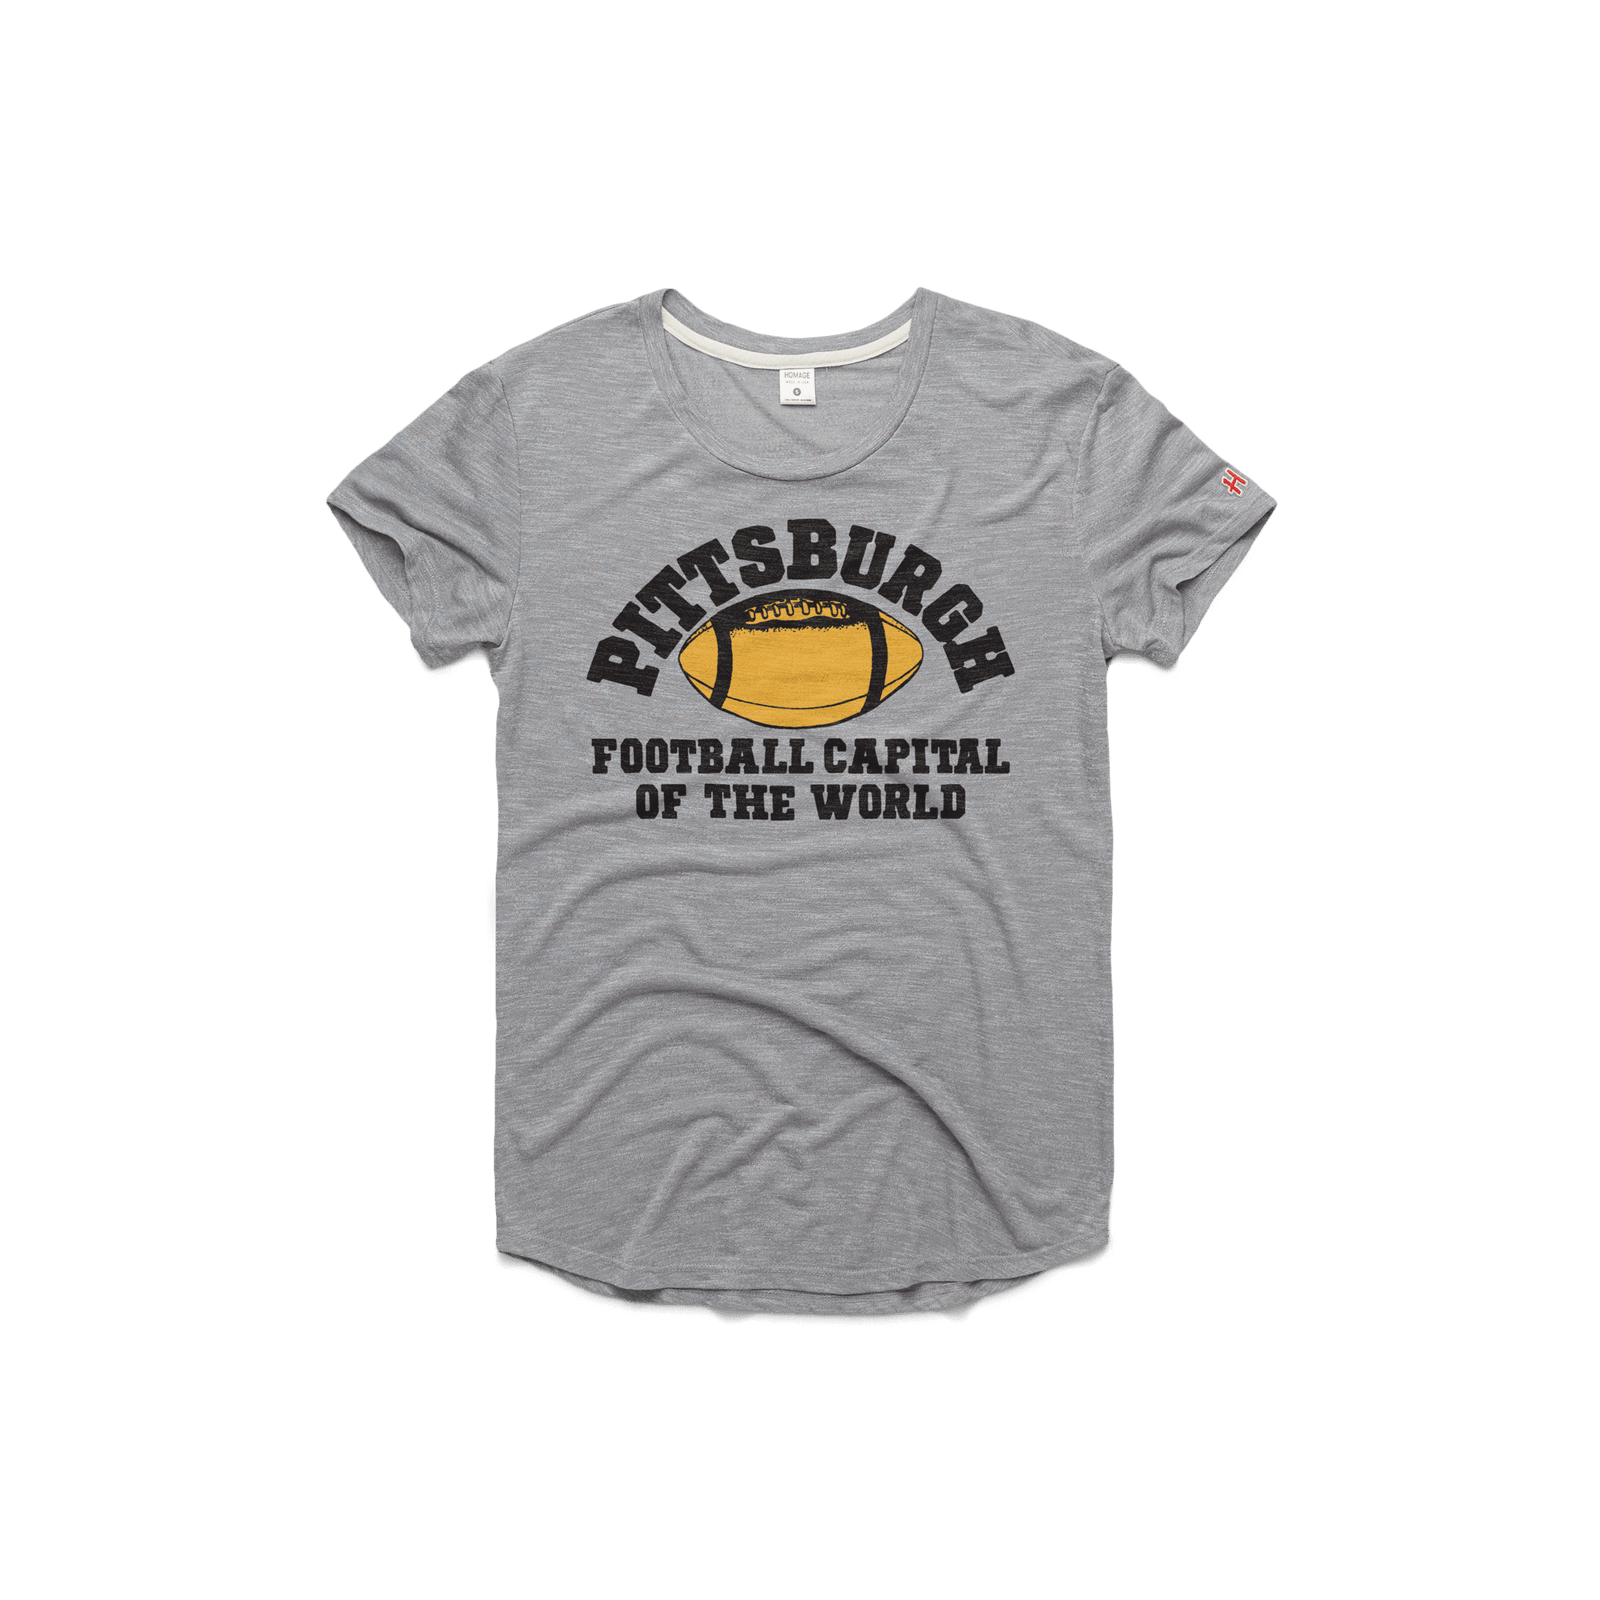 Women's Football Capital Of The World Easy Tee